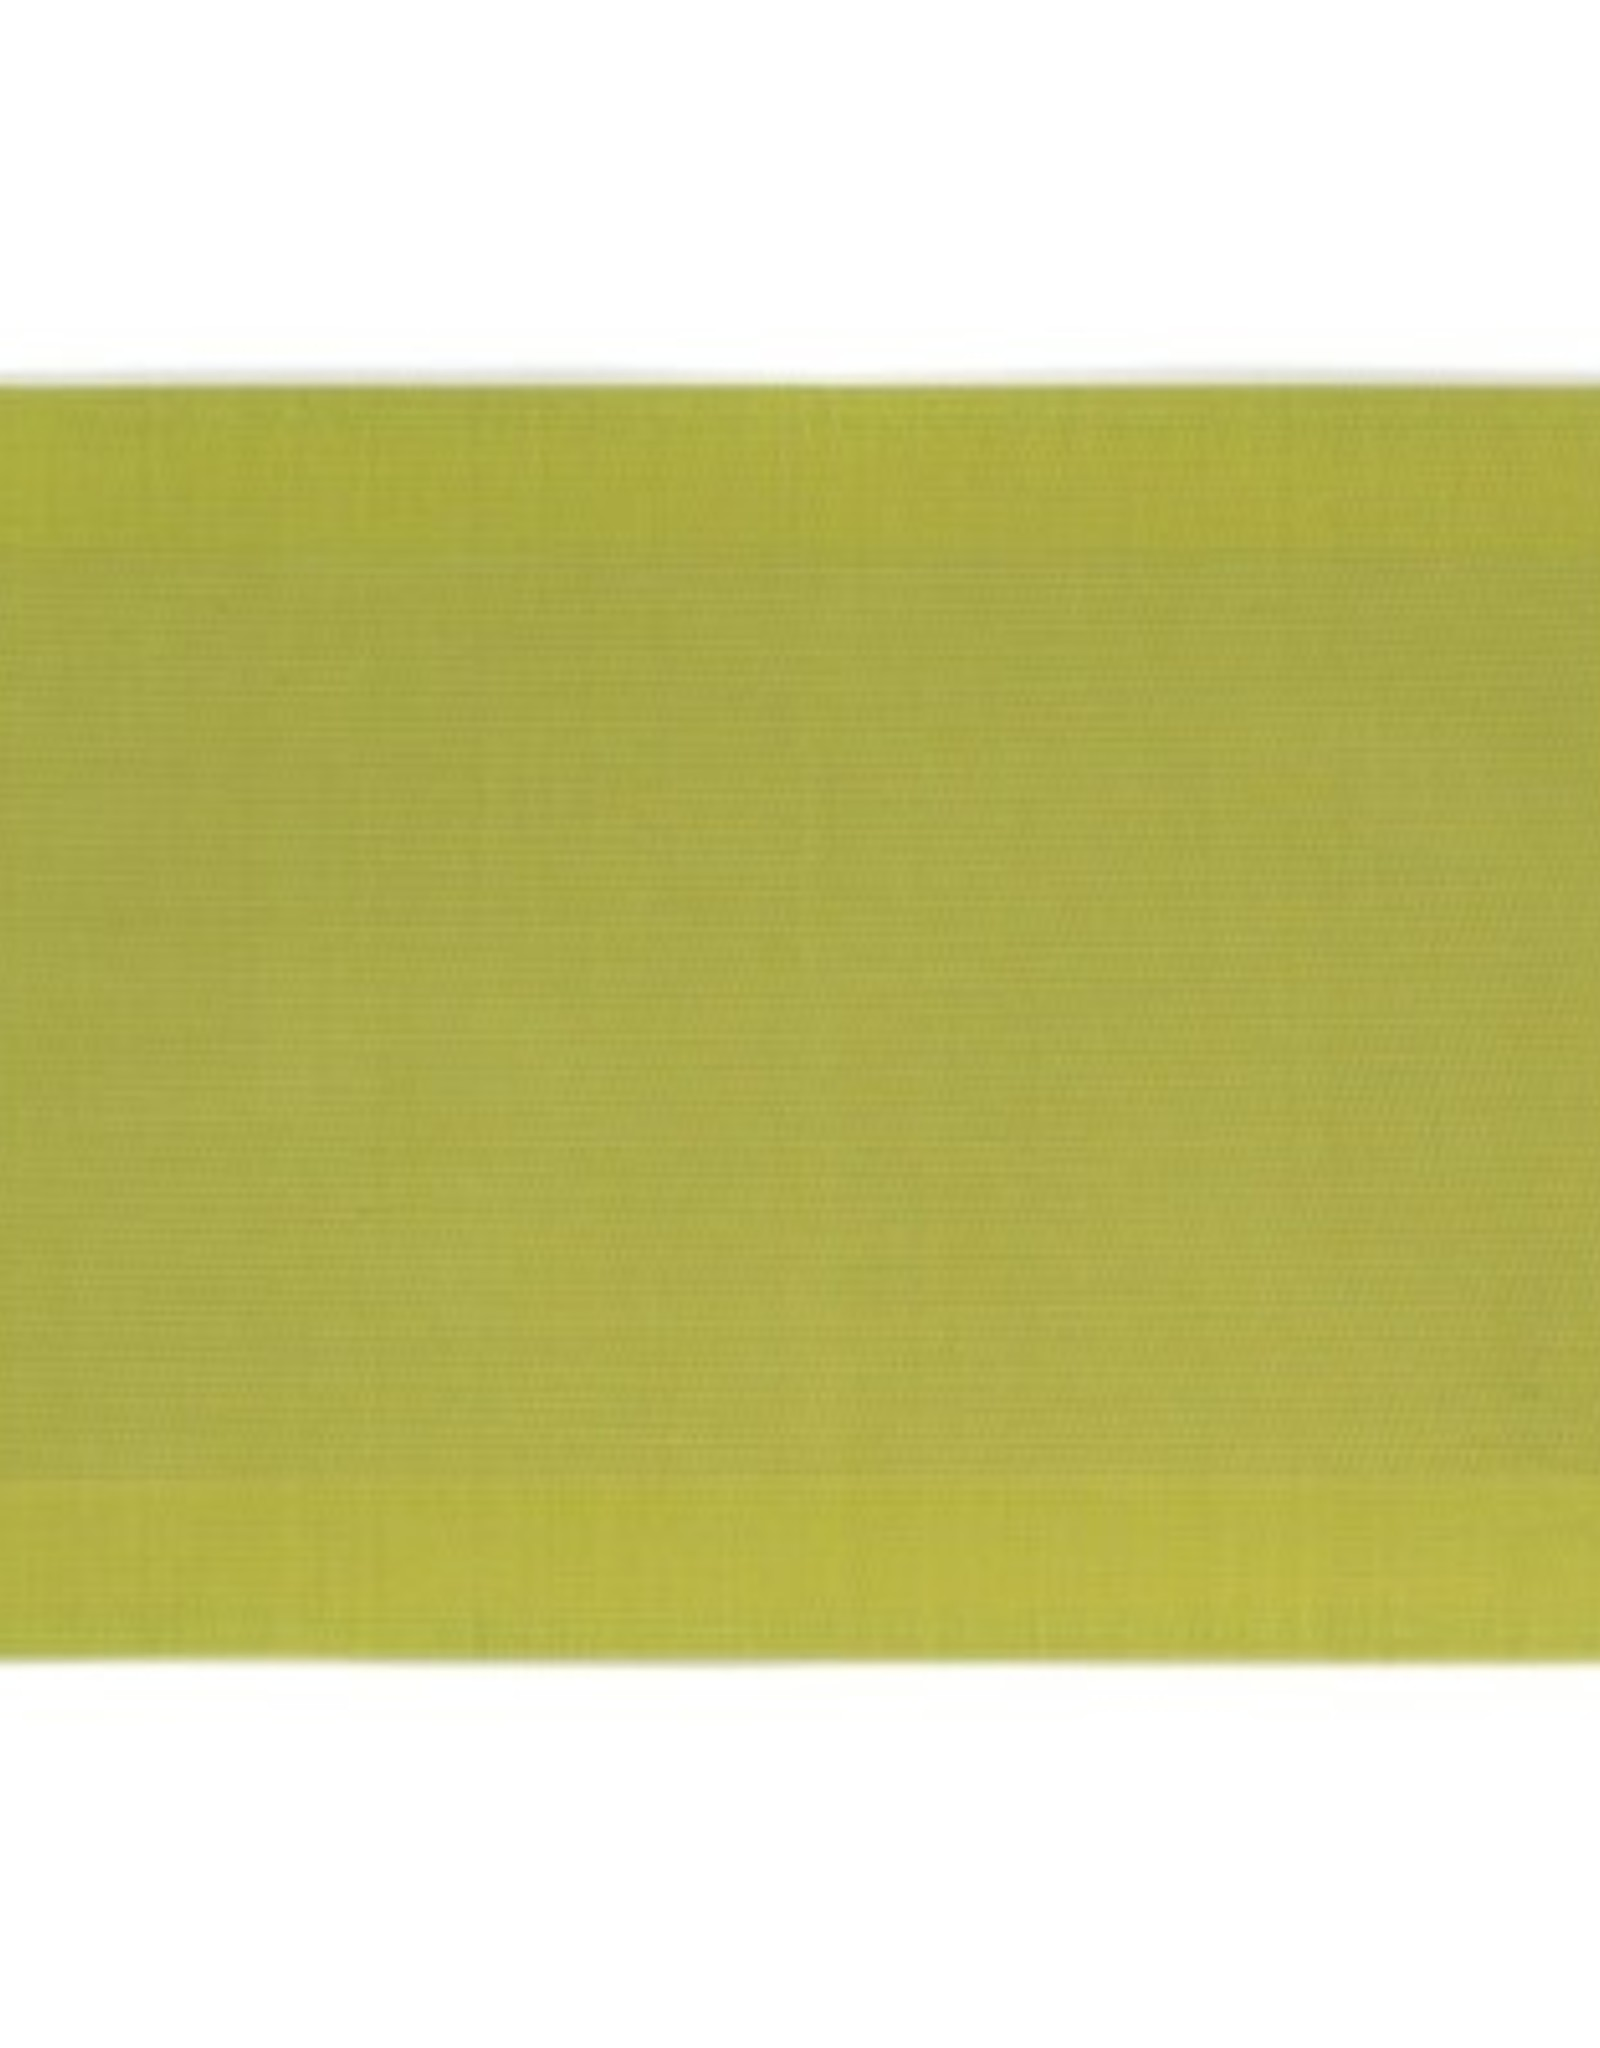 Placemat Harman Bordered 12 x 18 Green